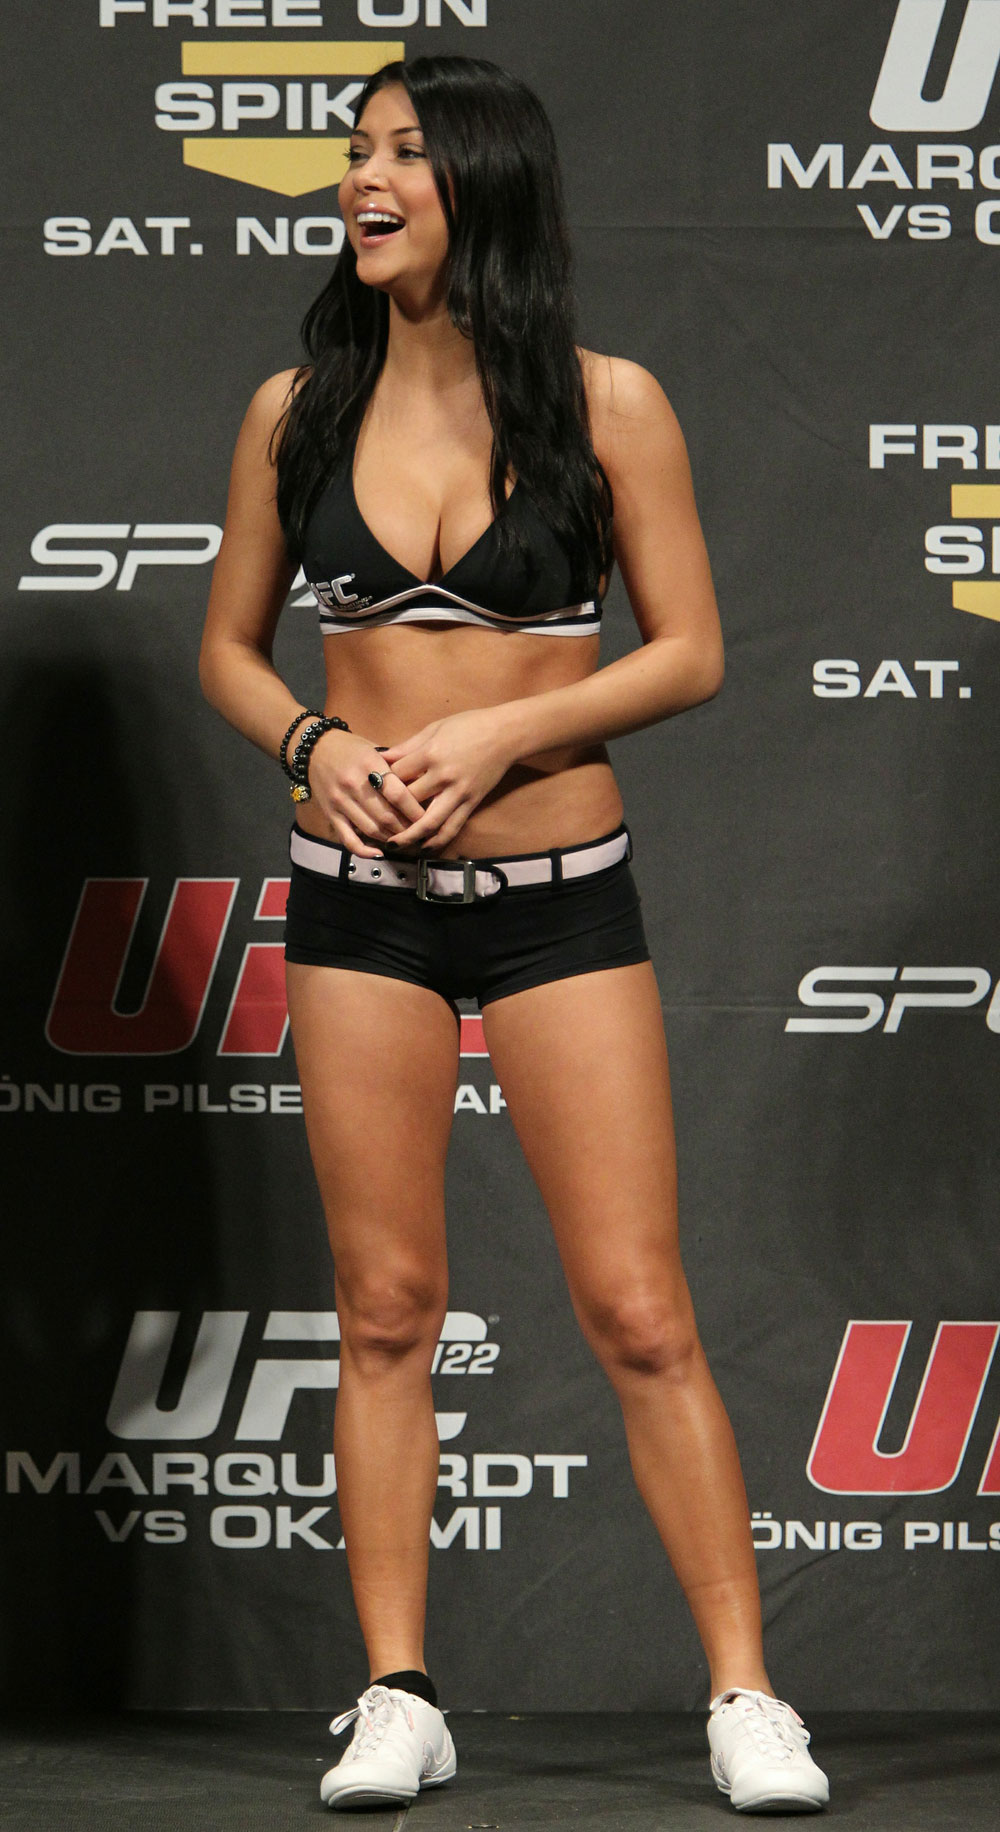 UFC Octagon Girl Arianny Celeste at the UFC 122 weigh-in at the K&scaron;nig Pilsener Arena on November 12,  2010 in Oberhausen, Germany.  (Photo by Josh Hedges/Zuffa LLC/Zuffa LLC via Getty Images)